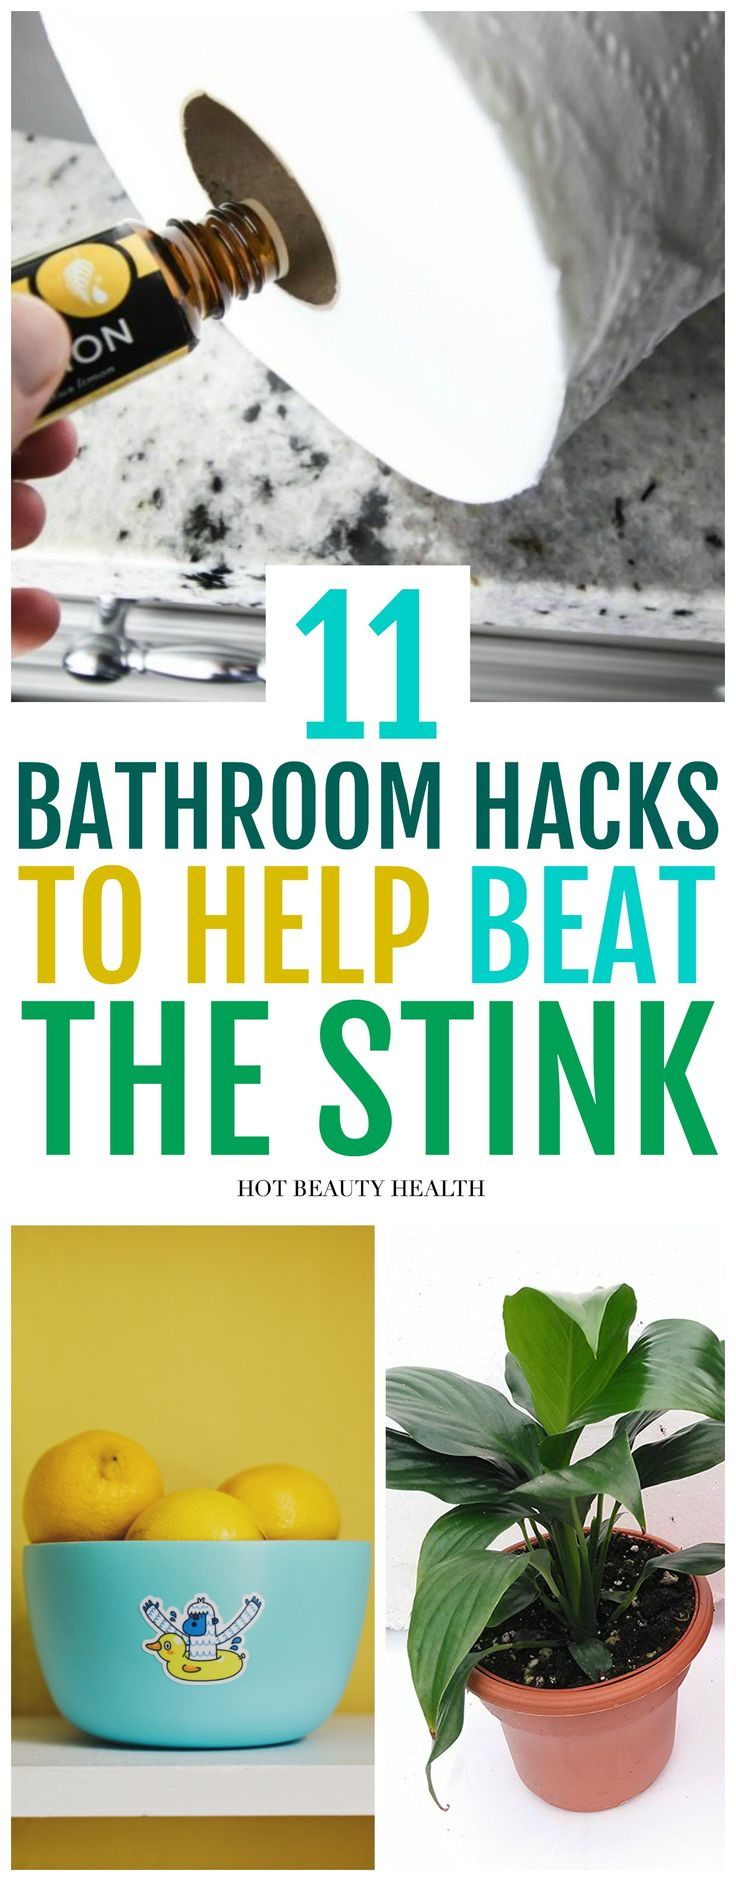 11 ways on how to get rid of bathroom smells naturally! No more mildew, musty and pee-smelling stenches. You'll be so happy to have found these GREAT home hacks when doing your spring cleaning! It's a great way to make your home and bathroom smell really good and fresh! Hot Beauty Health #cleaningtips #cleaninghacks